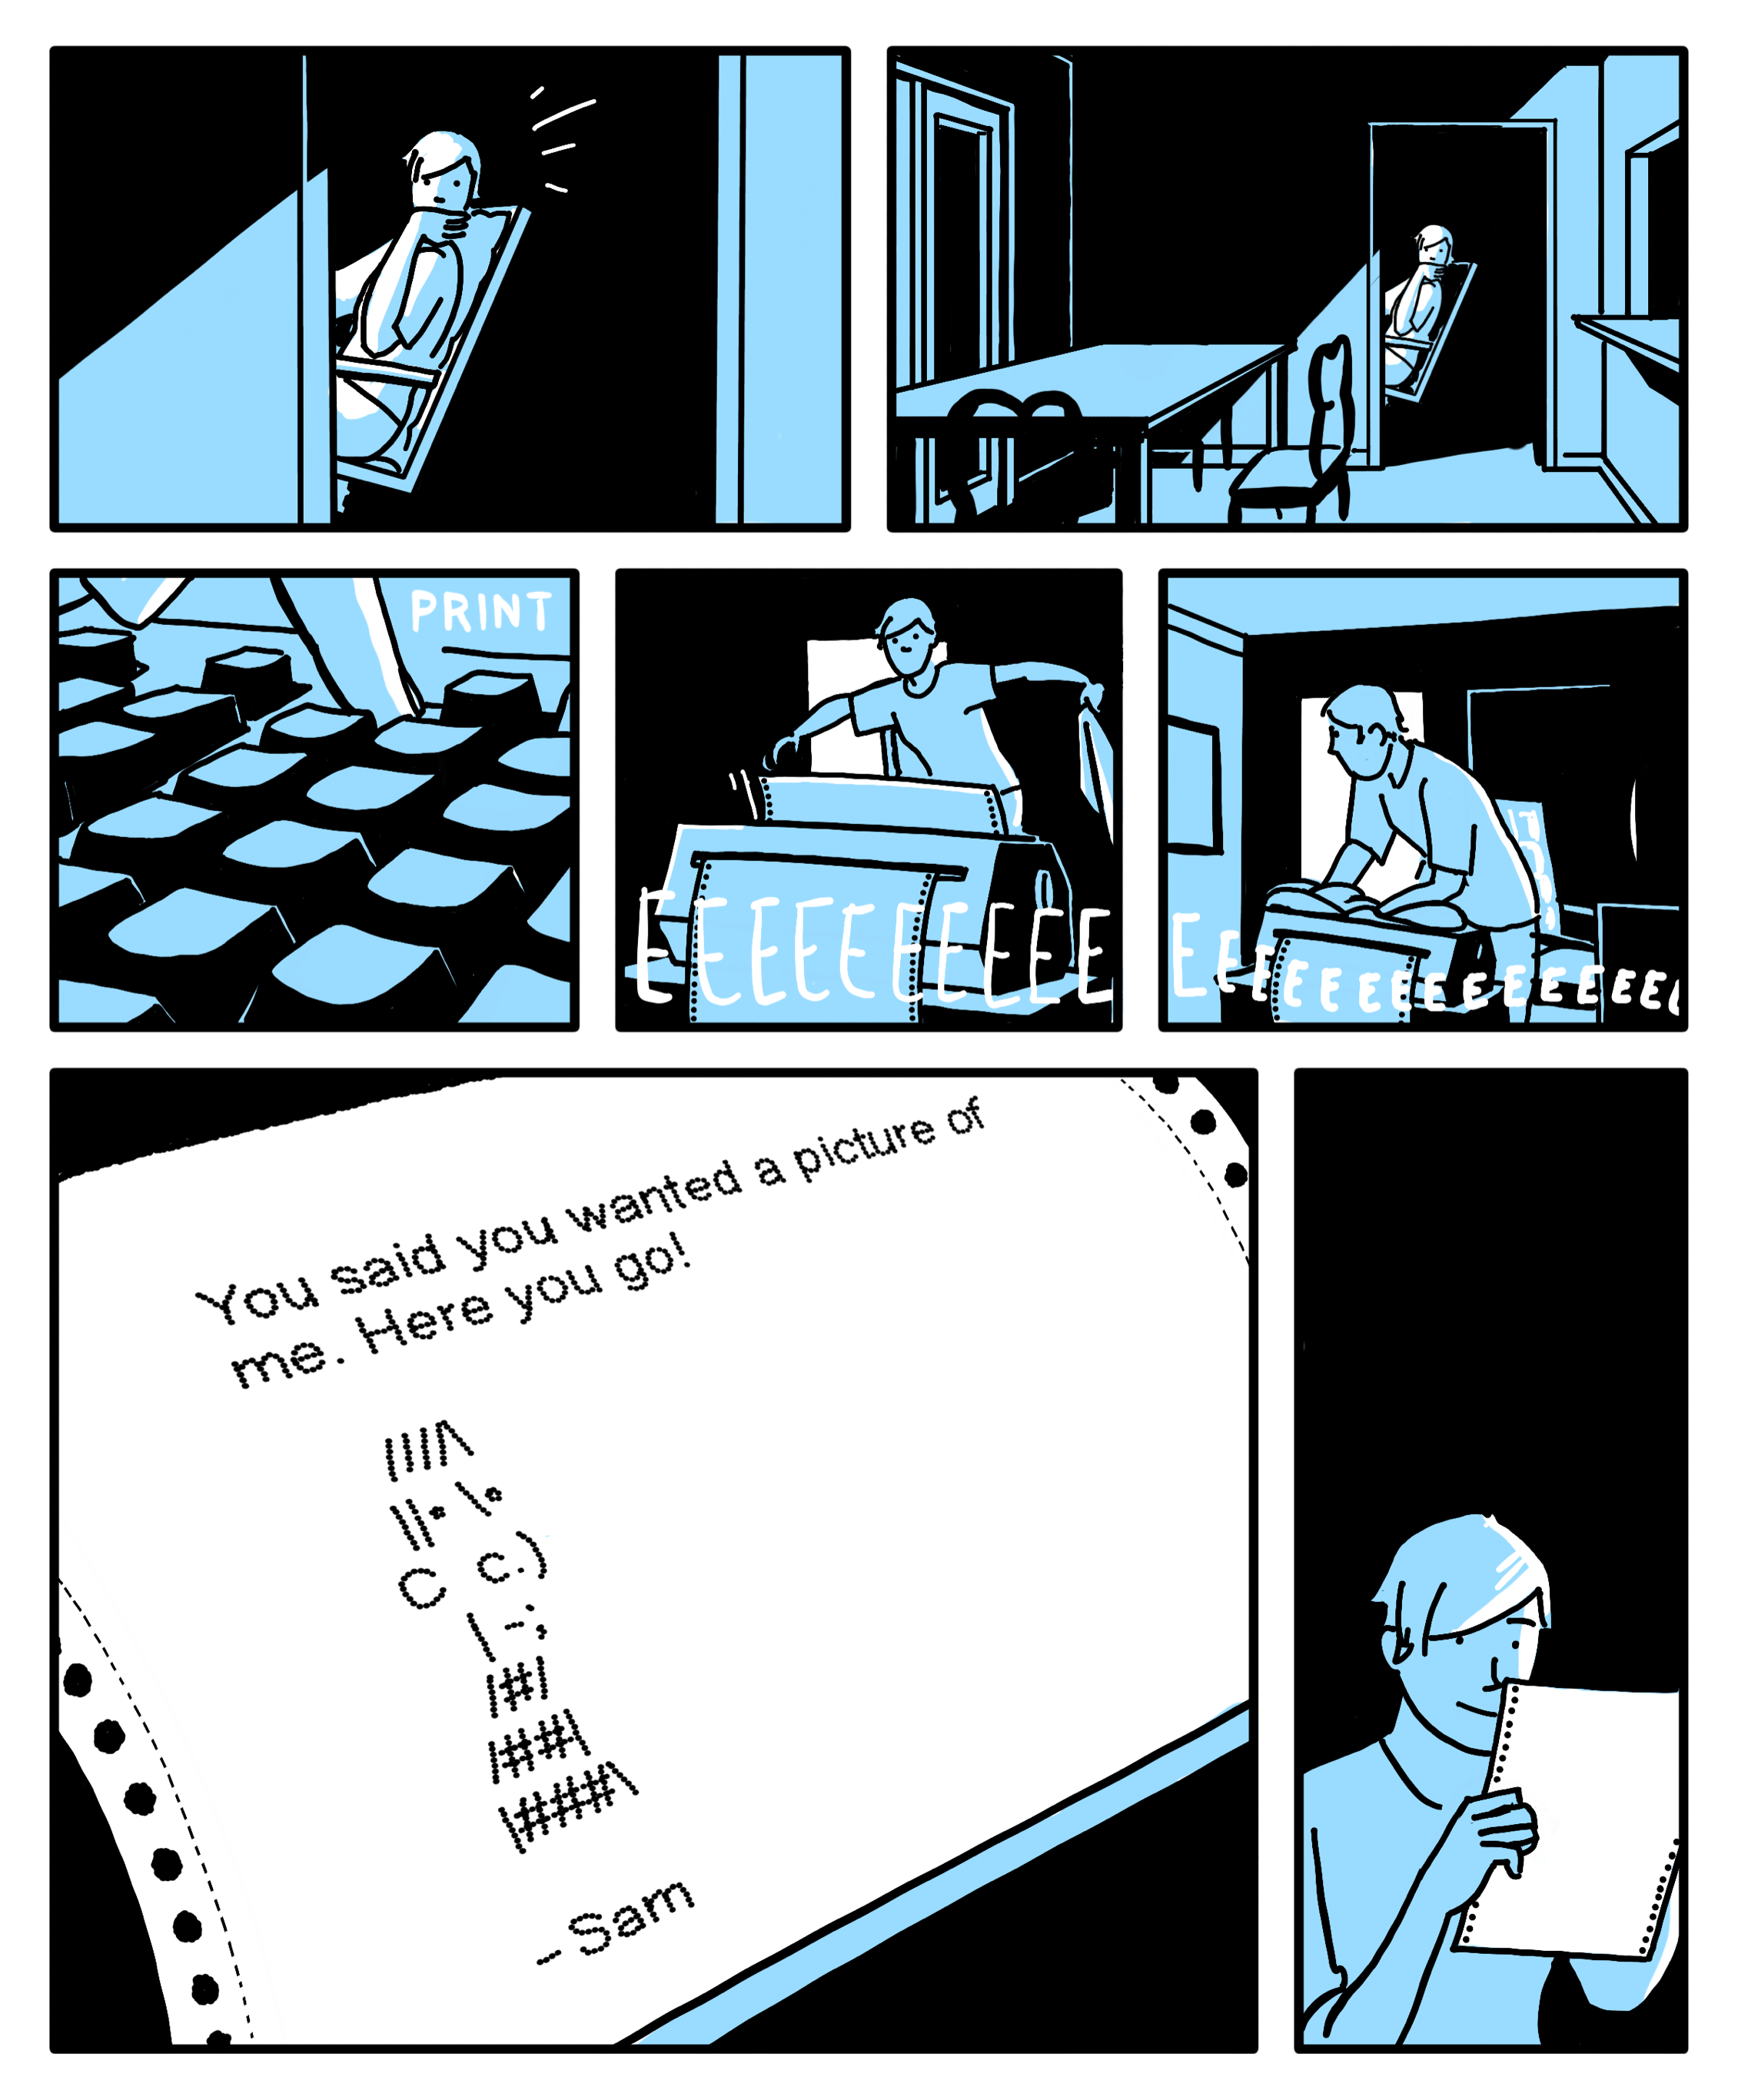 Page-17.png